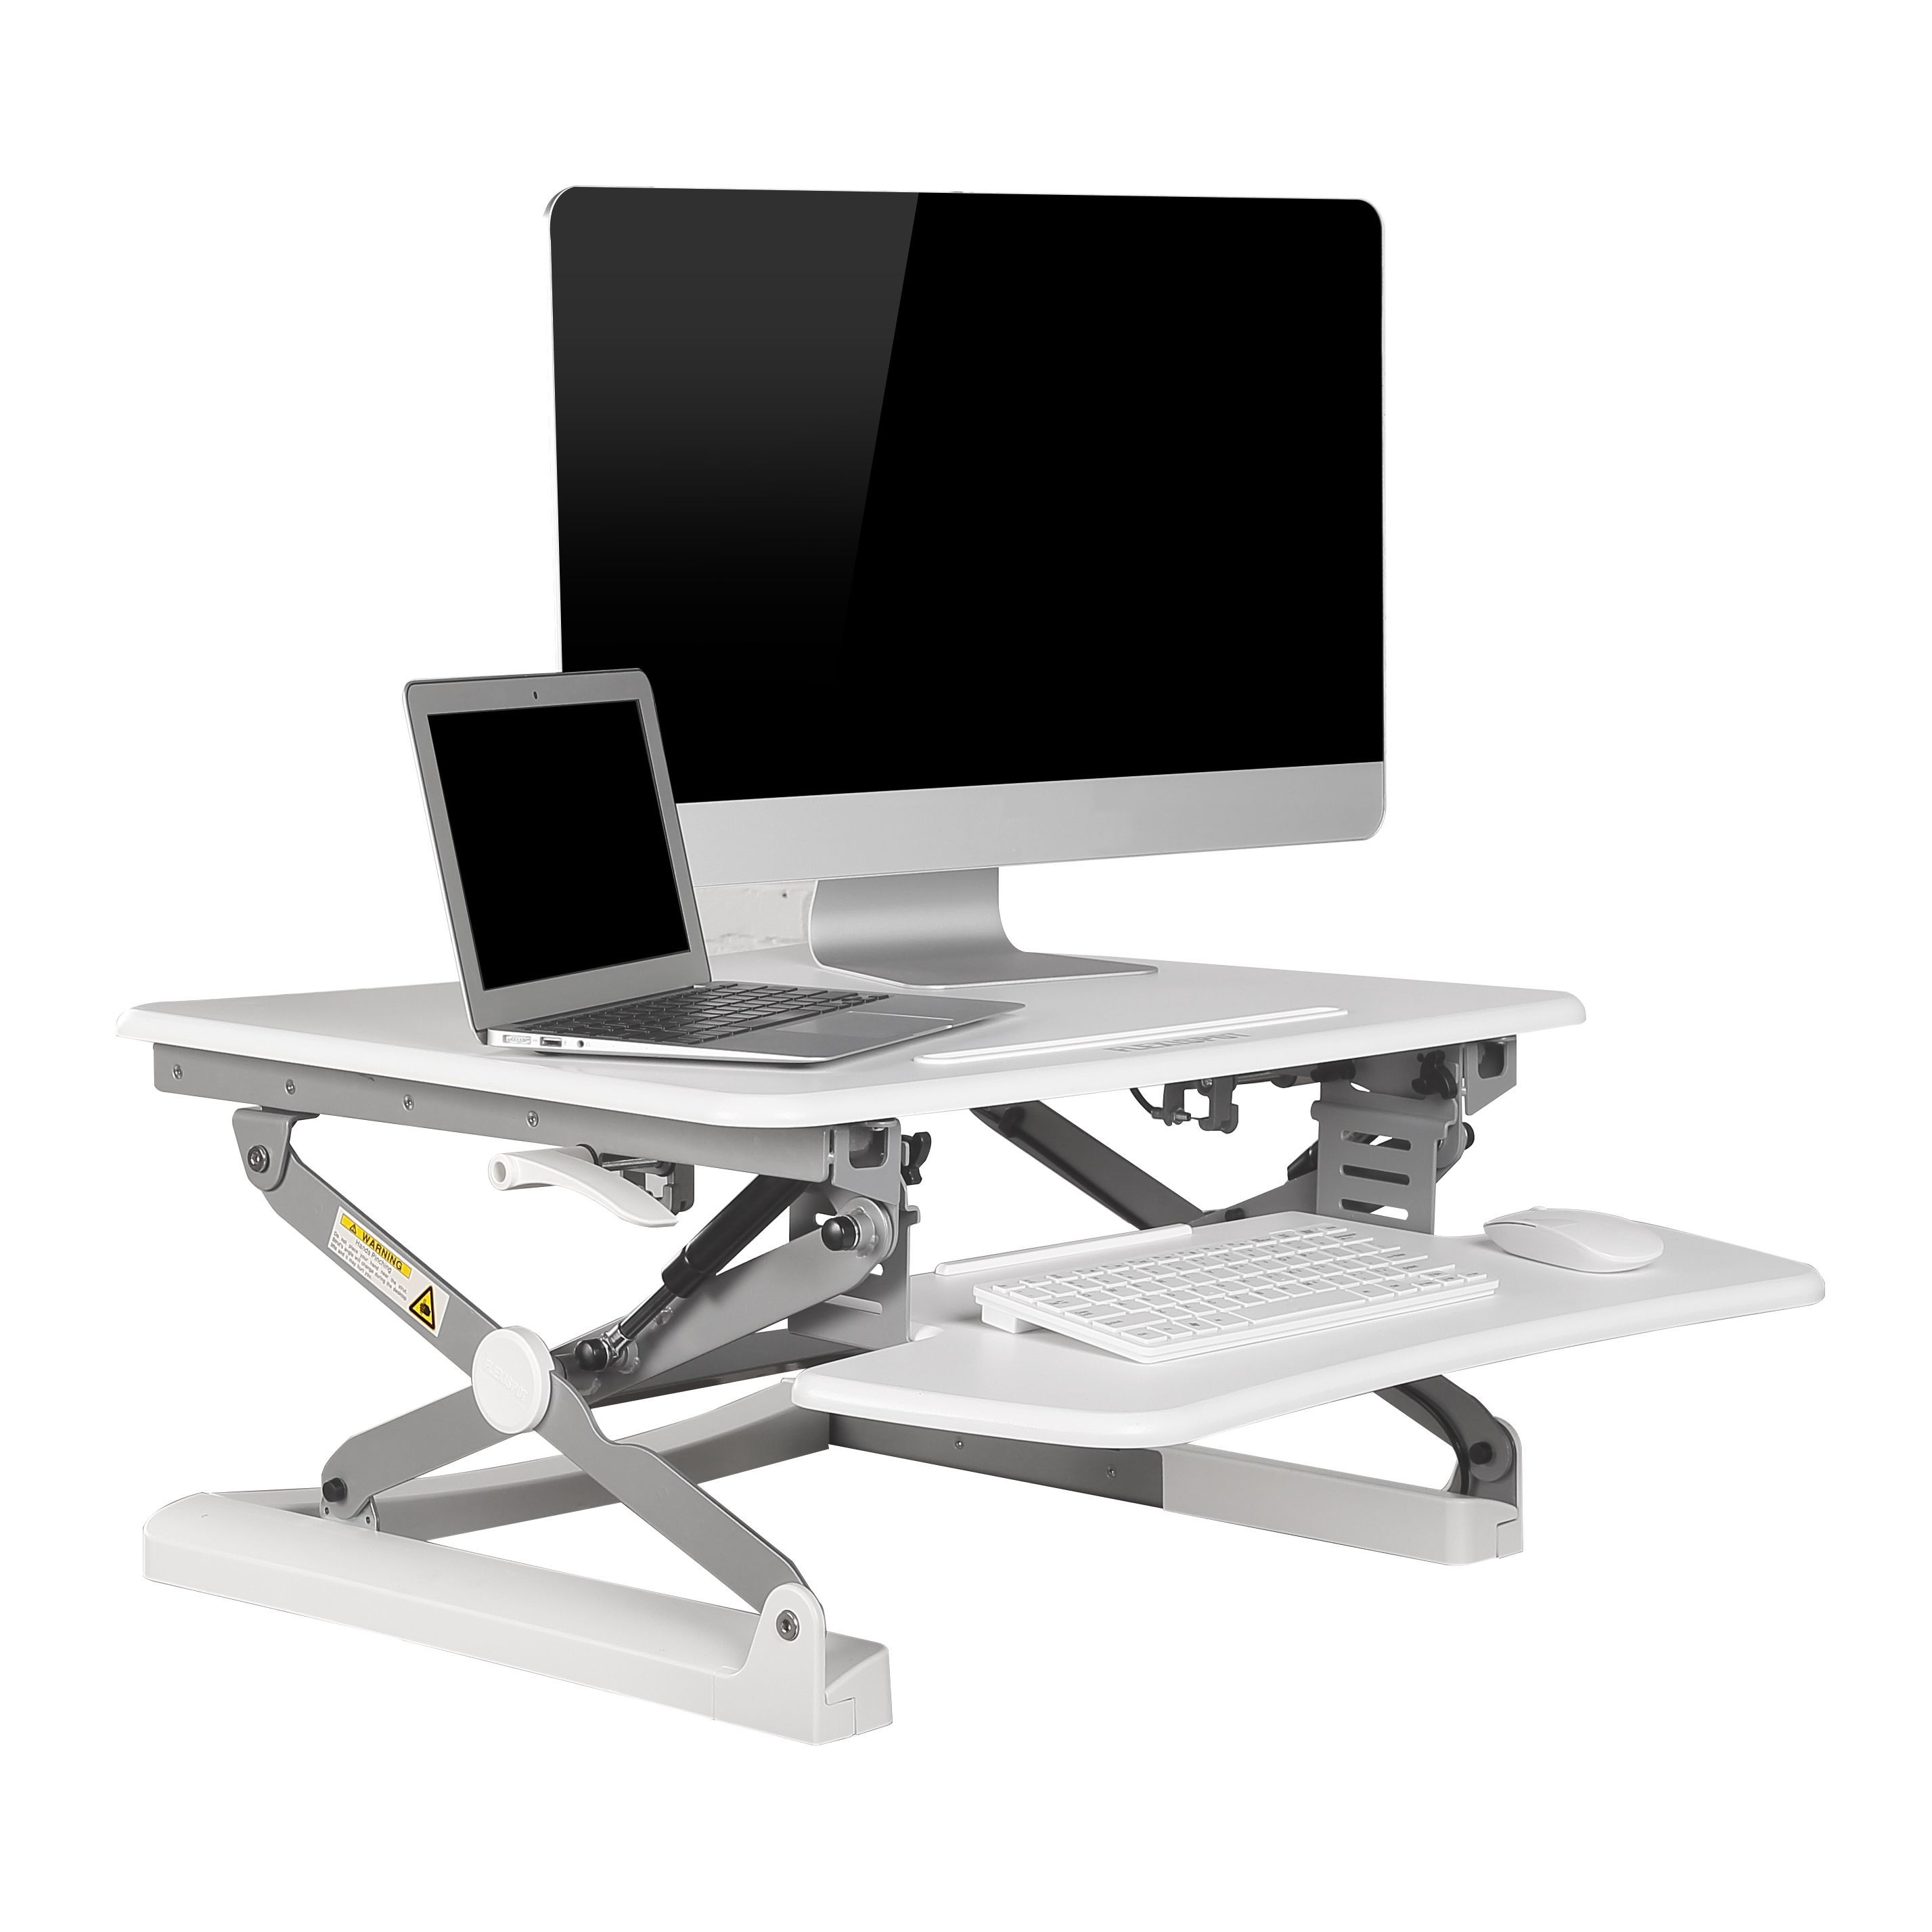 FlexiSpot M1W 27-inch Height-Adjustable Standing Desk Riser with Wide Keyboard Tray